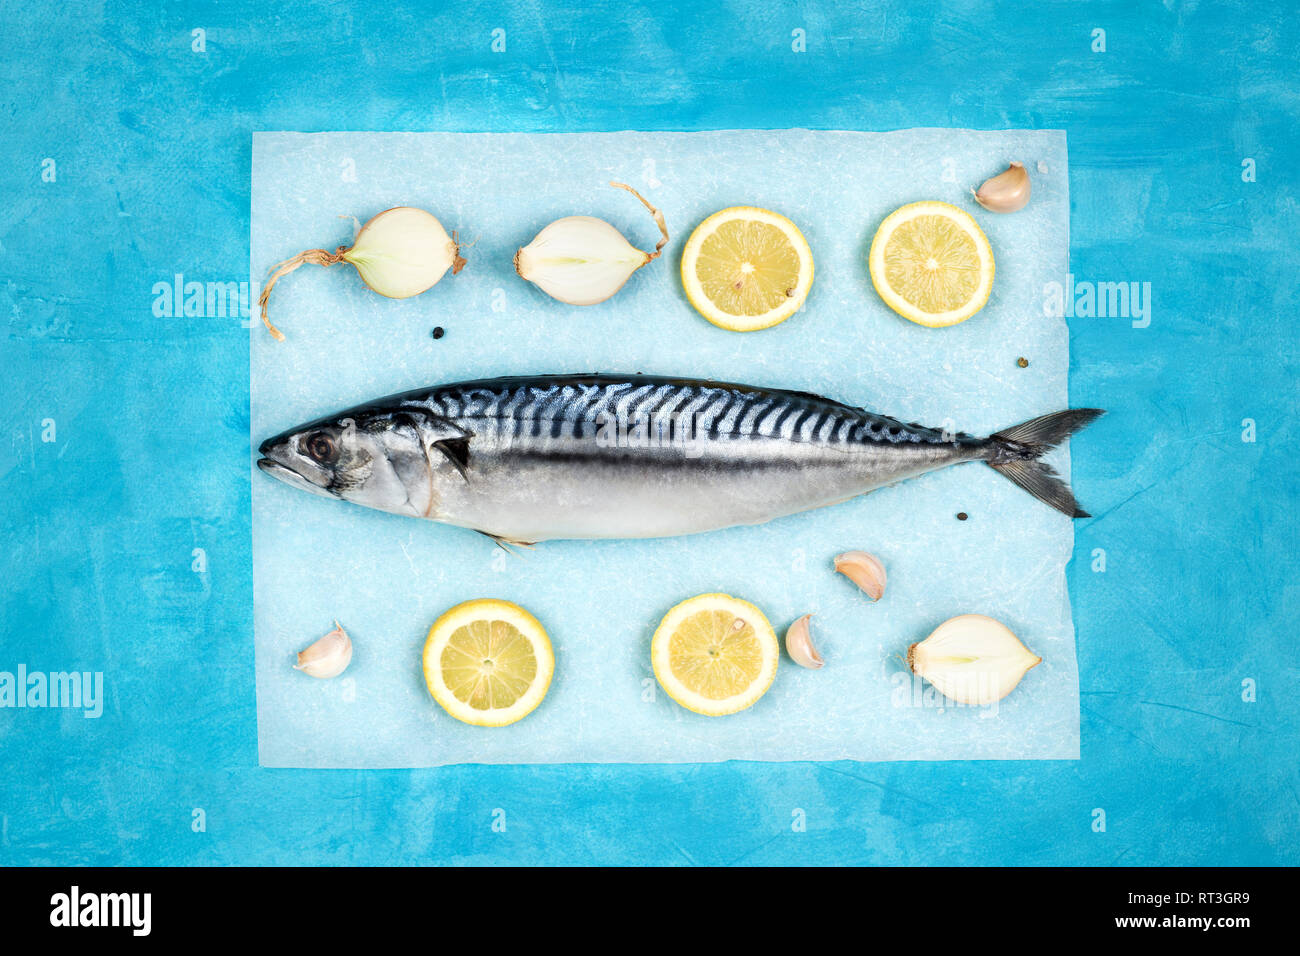 Creative layout made of fresh uncooked maсkerel with condiments on a parchment paper. Mediterranean seafood concept. Horizontal orientation. - Stock Image